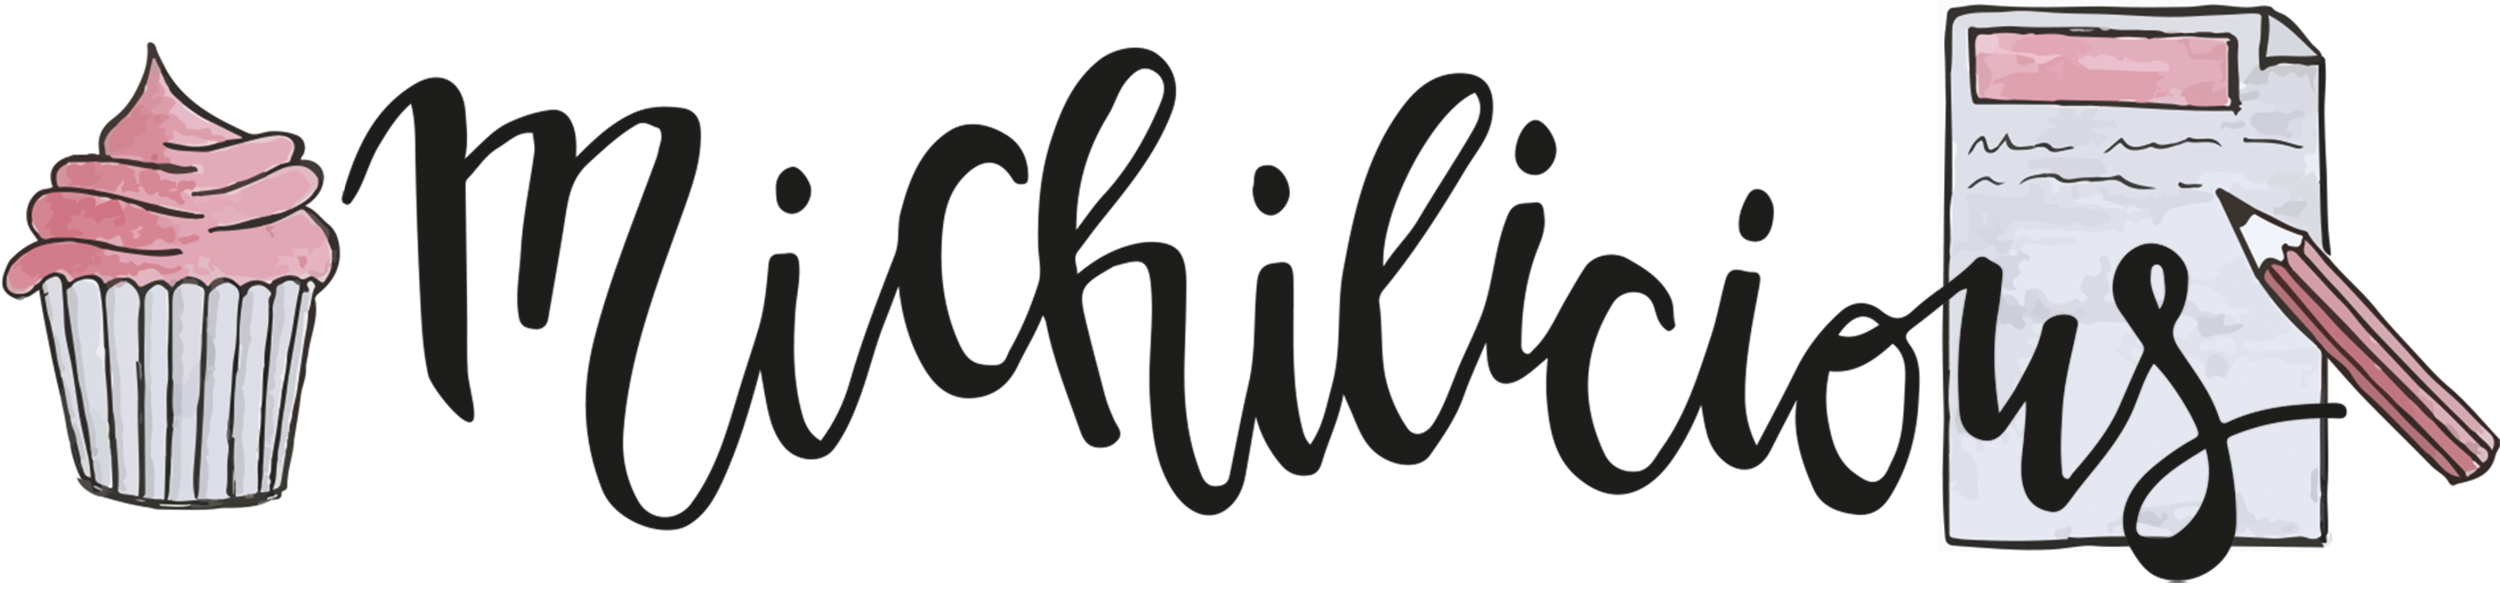 michilicious - Handlettering und Bullet Journal